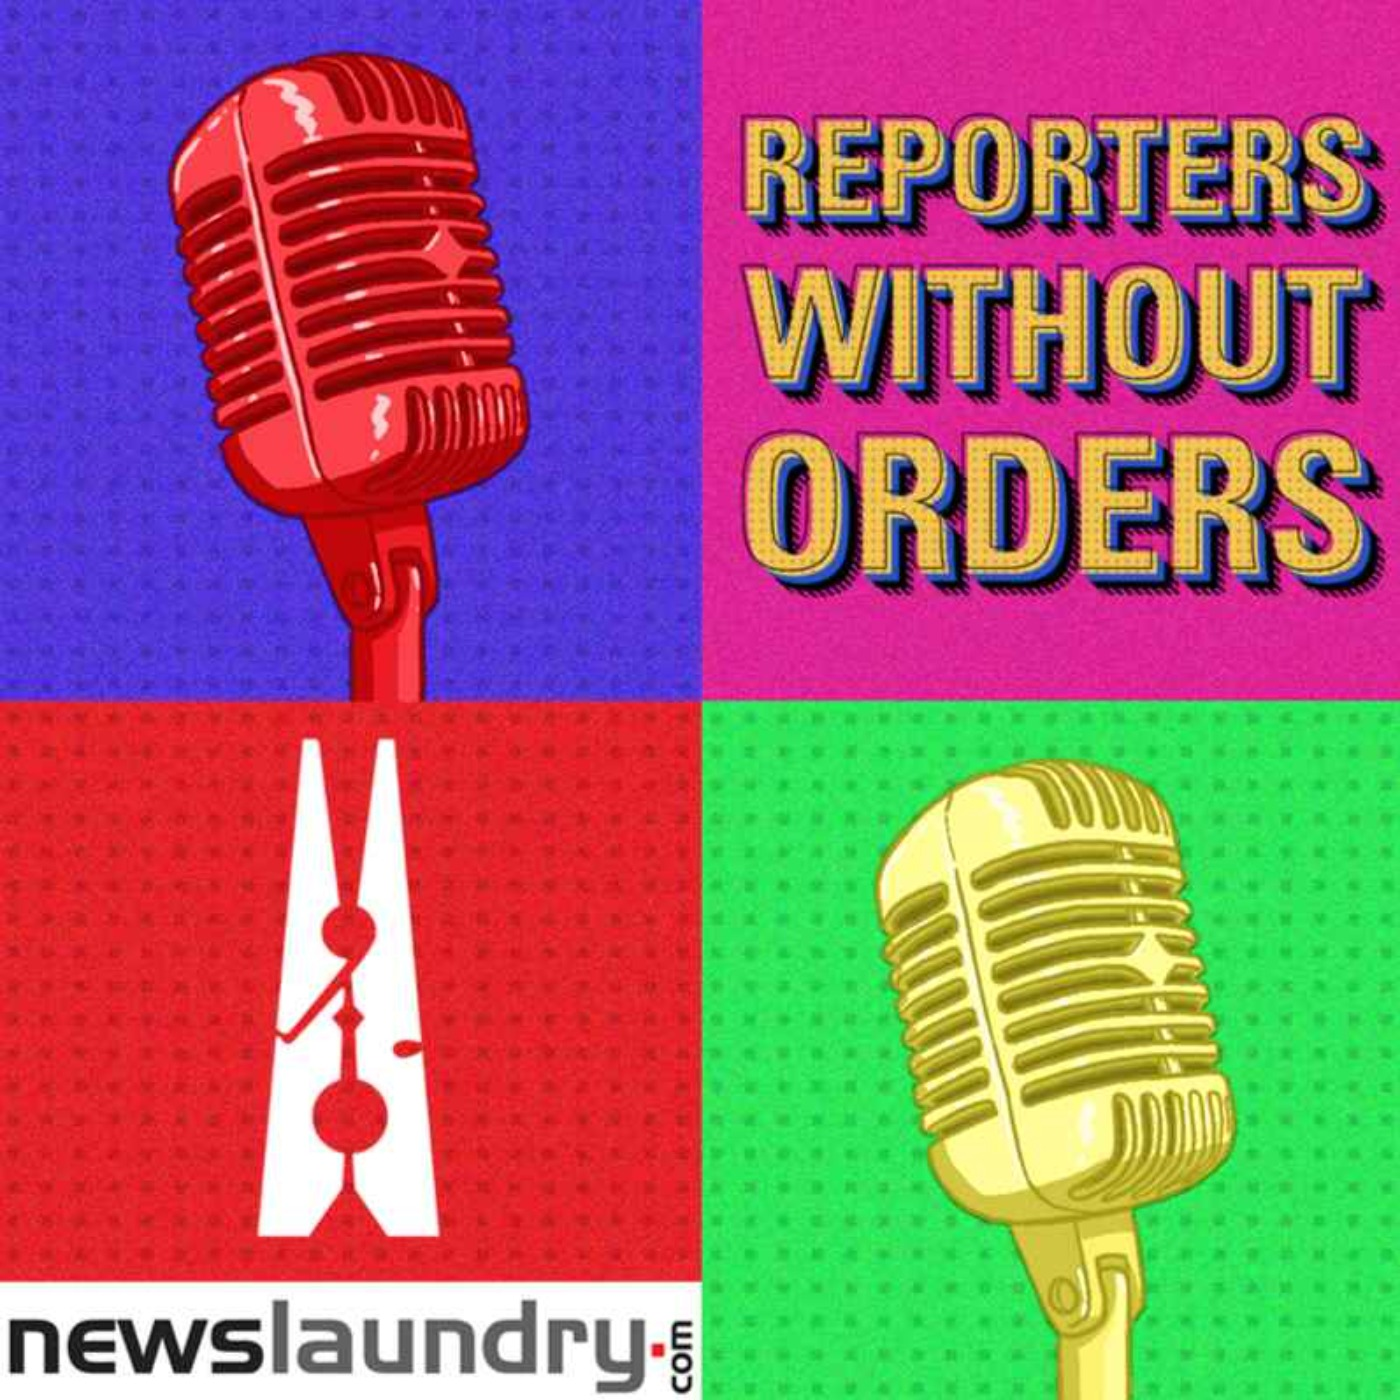 Reporters Without Orders Ep 162: Chhattisgarh gunfight and impact of lockdown on daily workers